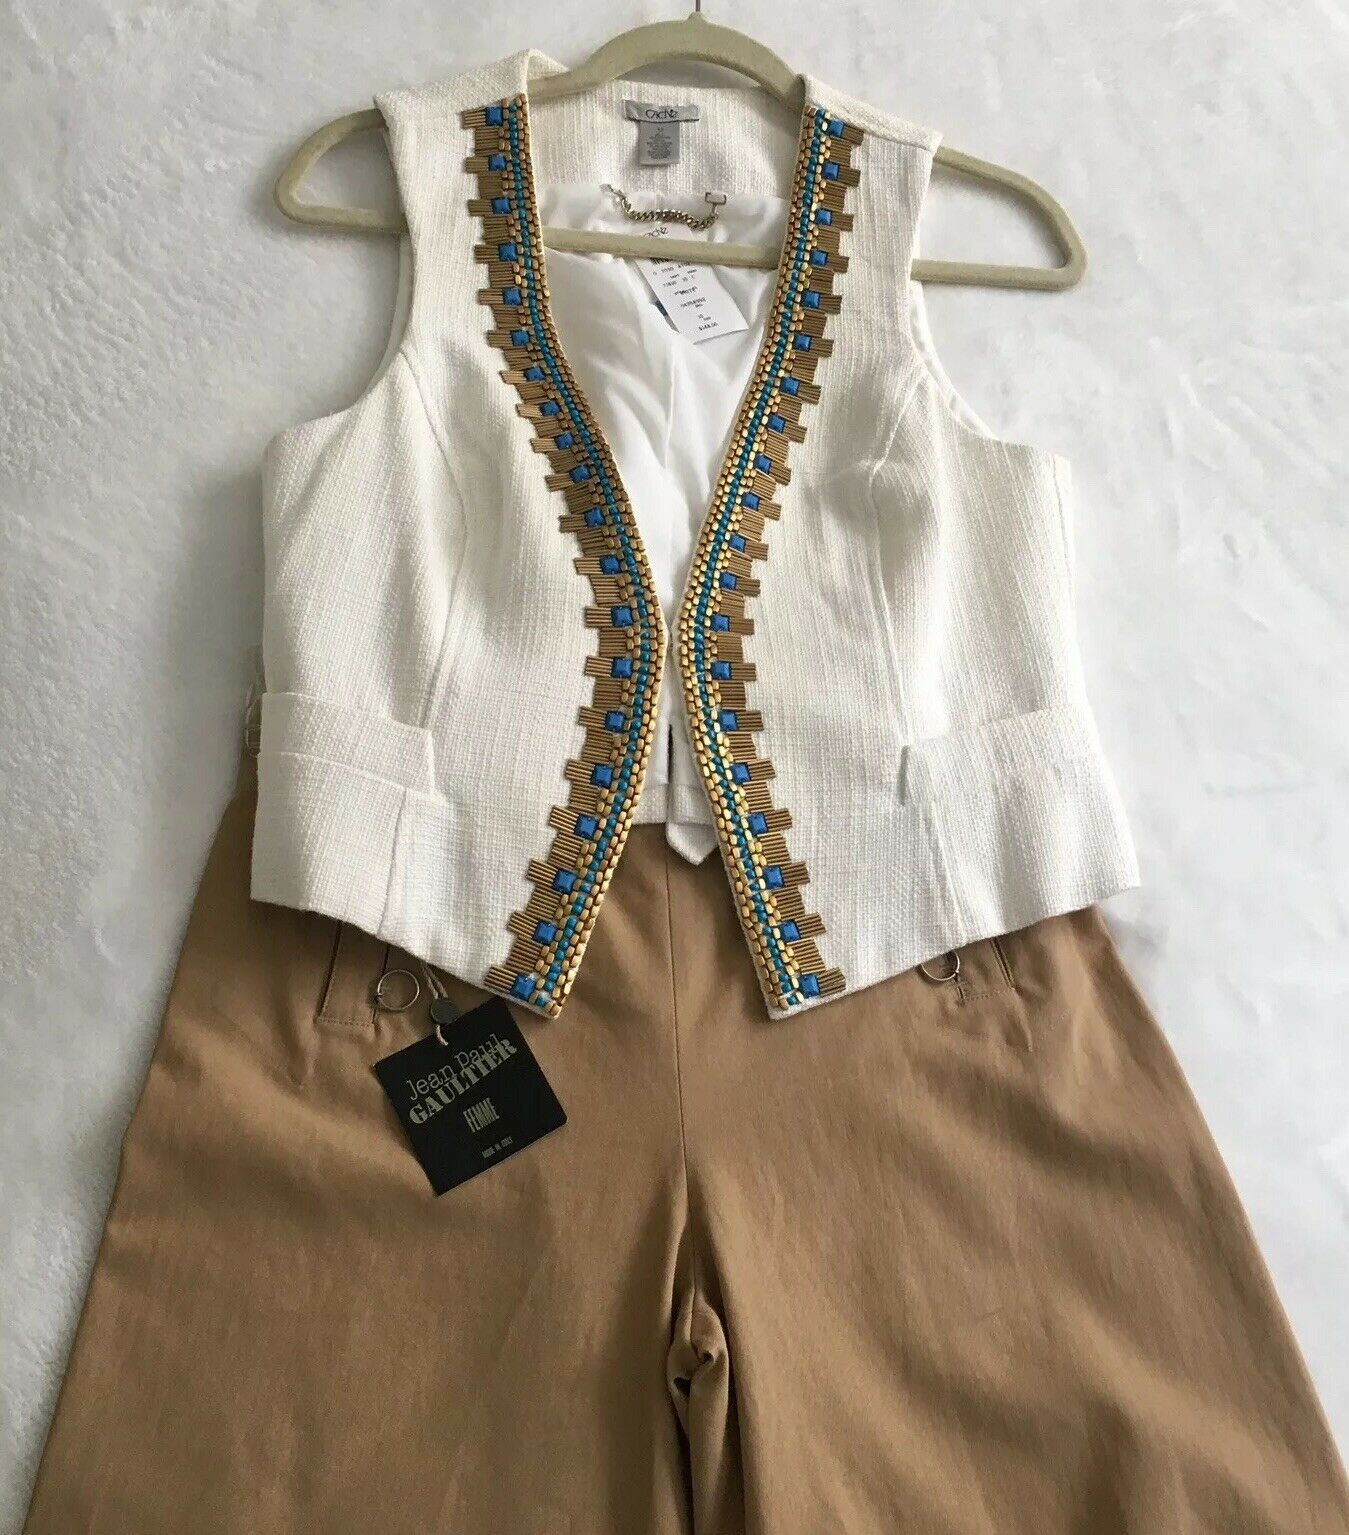 Caché Tweed Embroided Vest - NWT  Size 10 S M